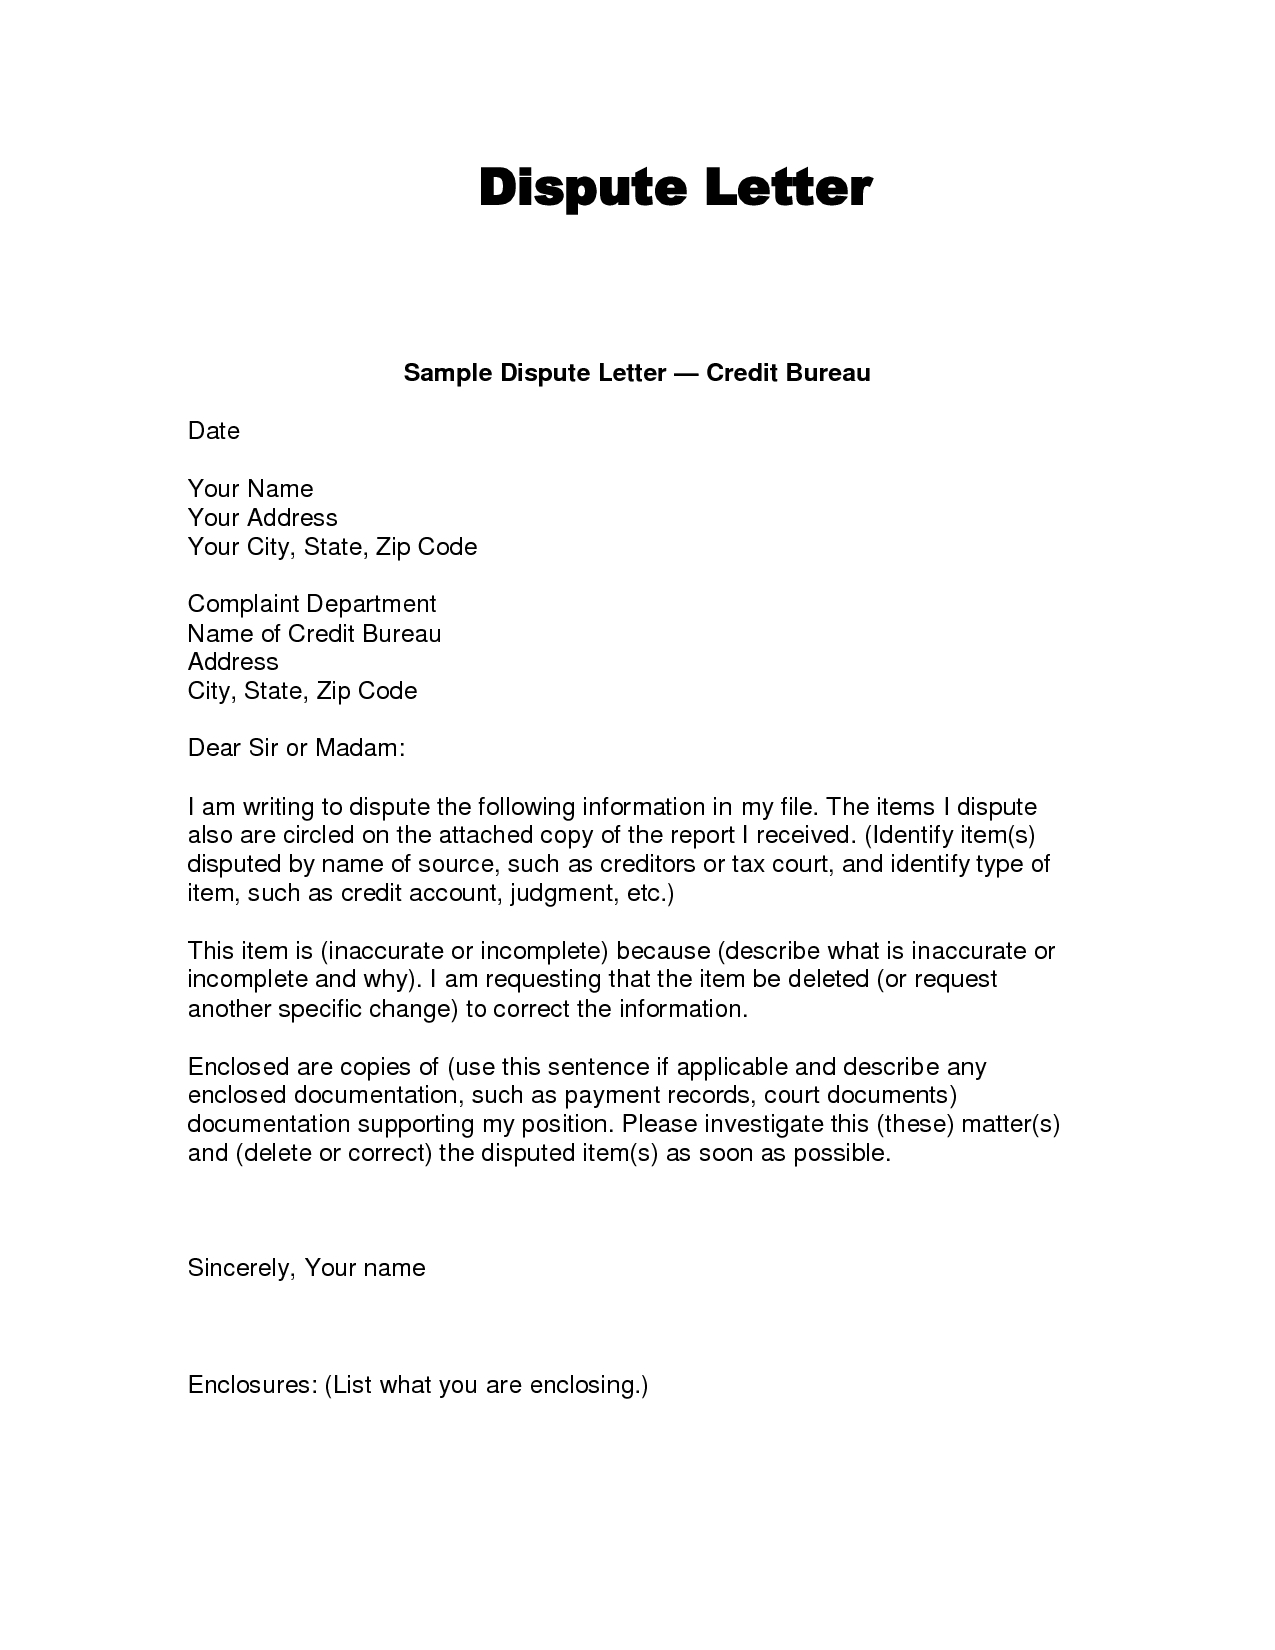 credit report dispute letter template example-credit dispute letter templates 19-p